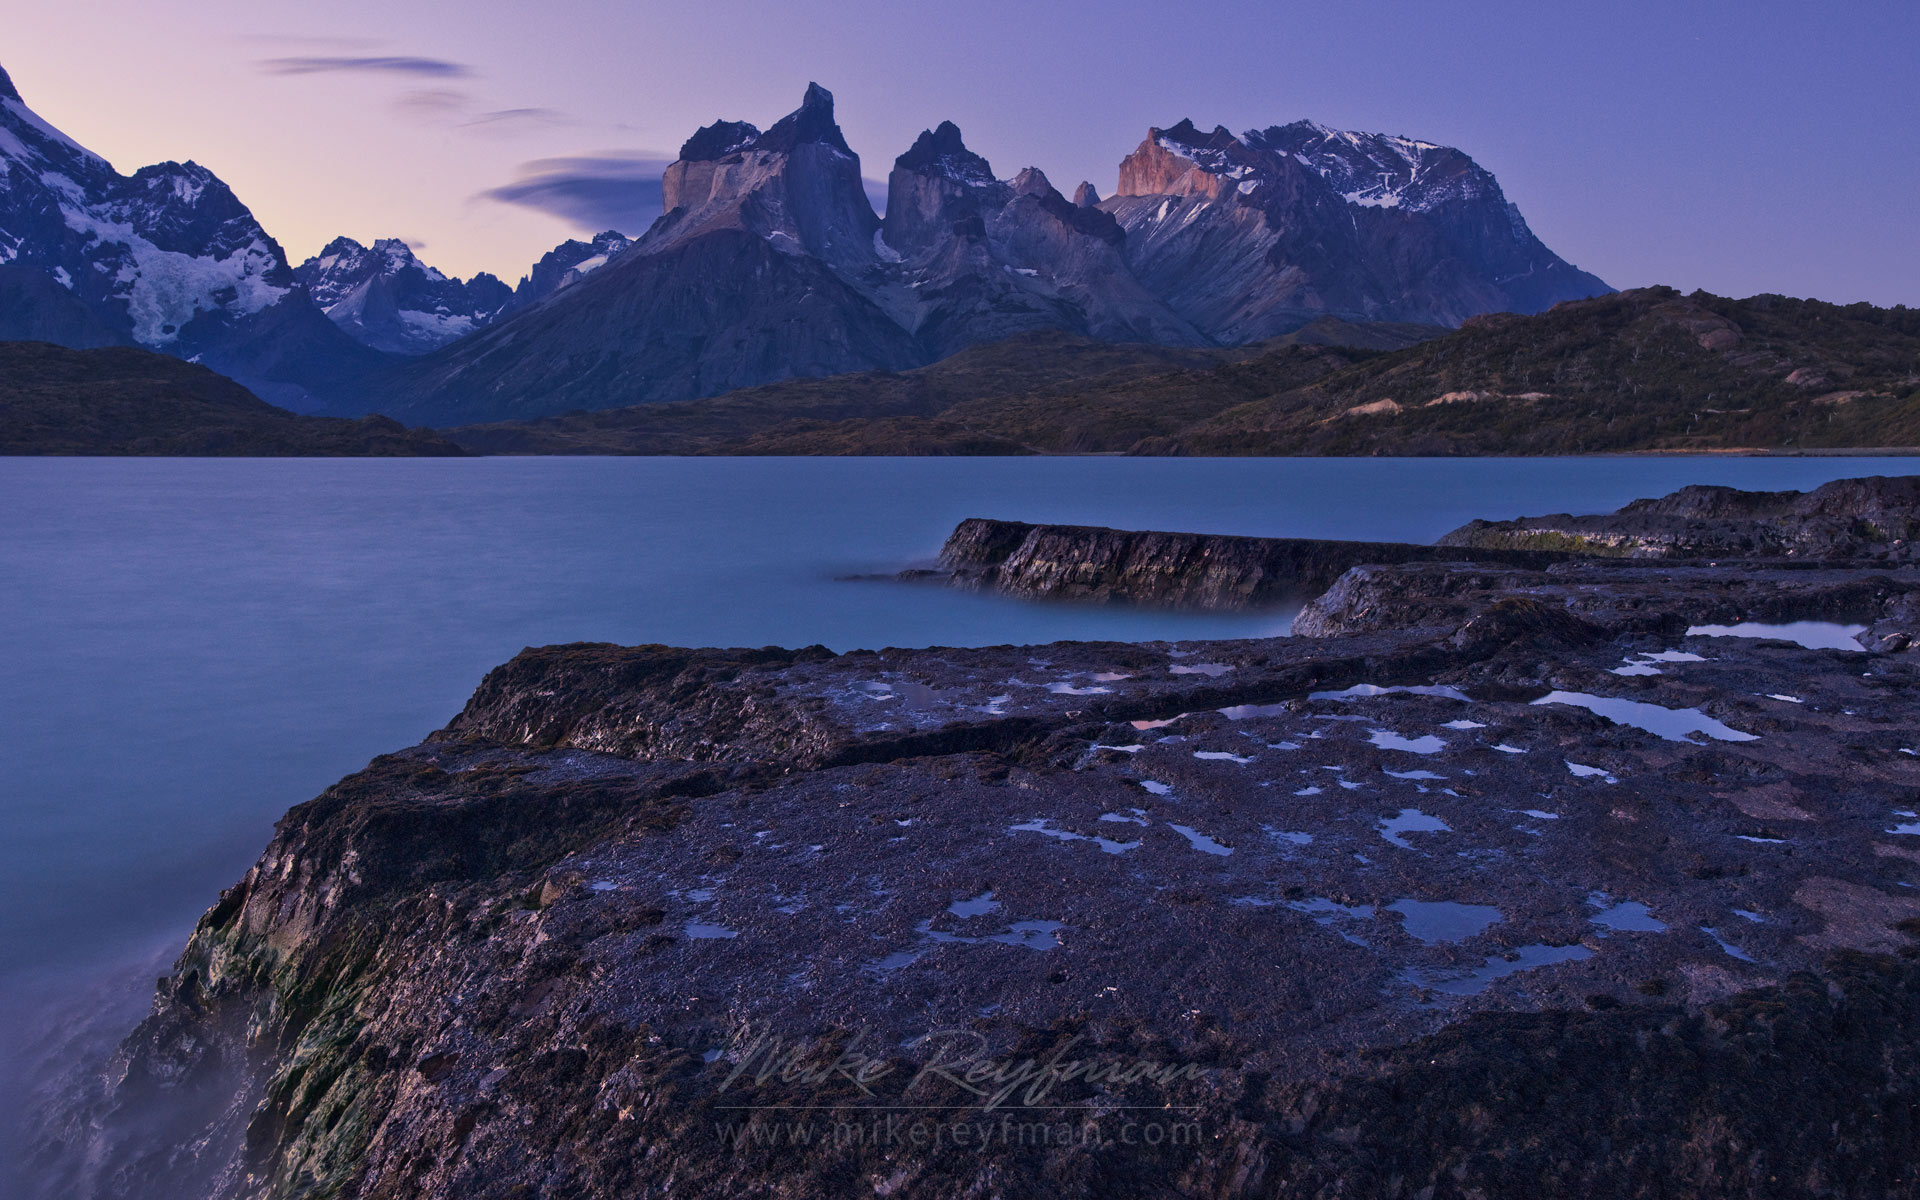 Lago Pehoe and Cuernos del Paine, Torres del Paine National Park, Ultima Esperanza Province, Magallanes and Antartica Chilena Region XII, Patagonia, Chile. - Torres-Del-Paine-National-Park-Patagonia-Chile - Mike Reyfman Photography